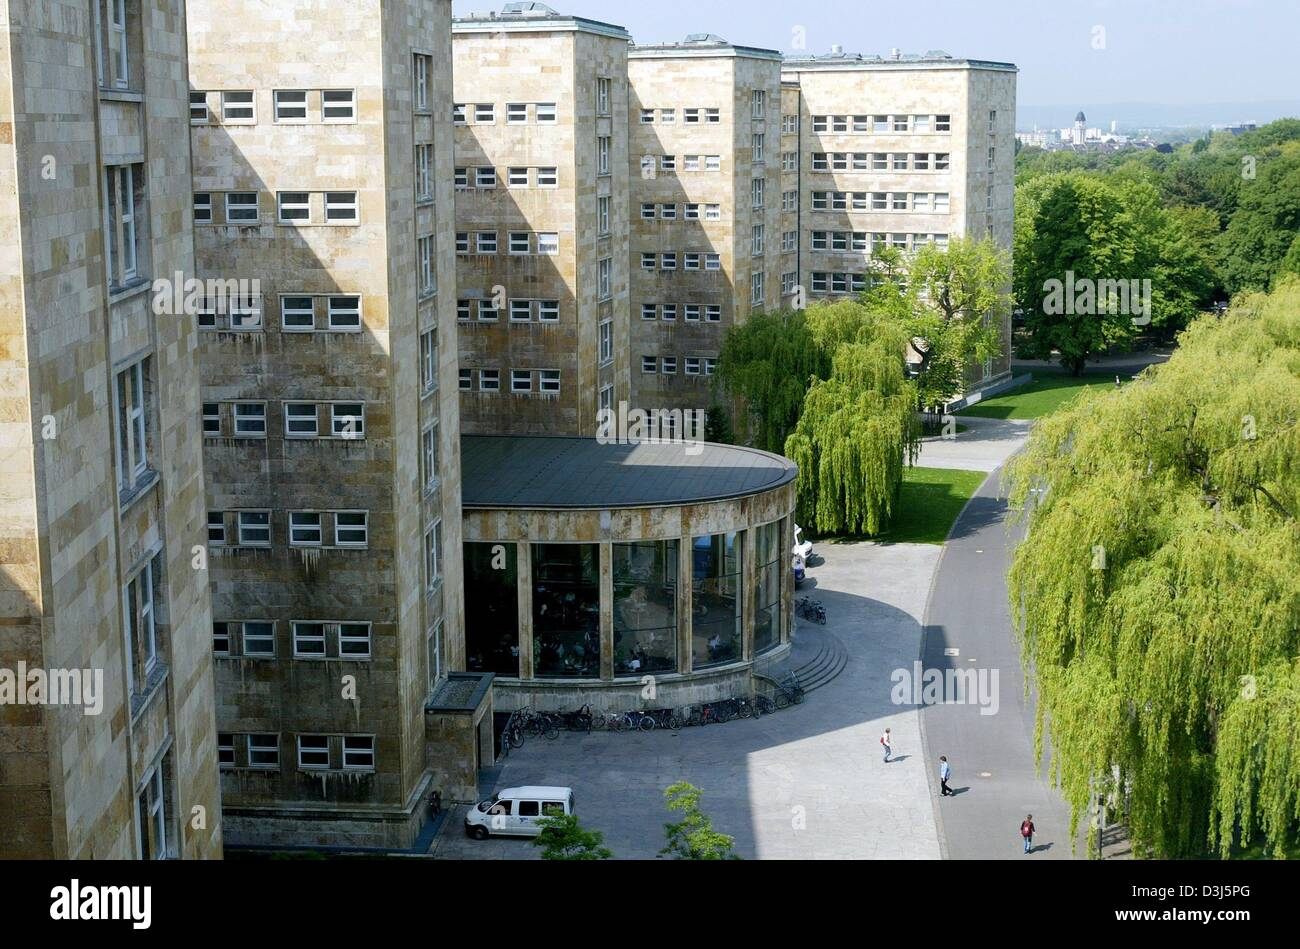 (dpa) - A view of the  so-called Poelzig building on the Westend campus of Frankfurt University in Frankfurt, Germany, Stock Photo